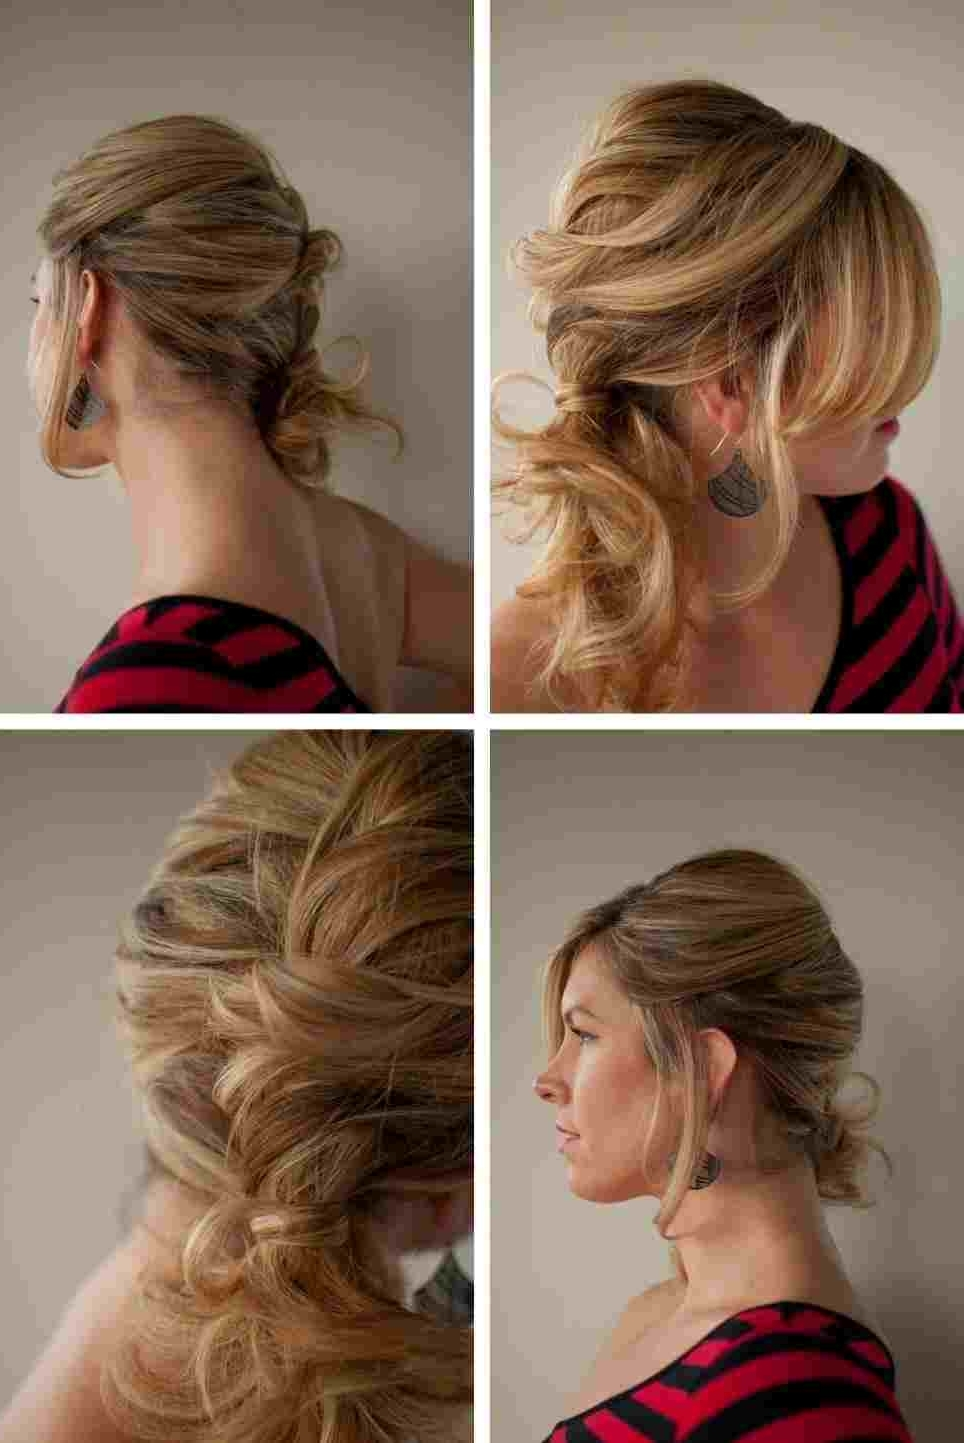 Bridesmaid Hairstyles Side Ponytail With Braid (View 7 of 20)